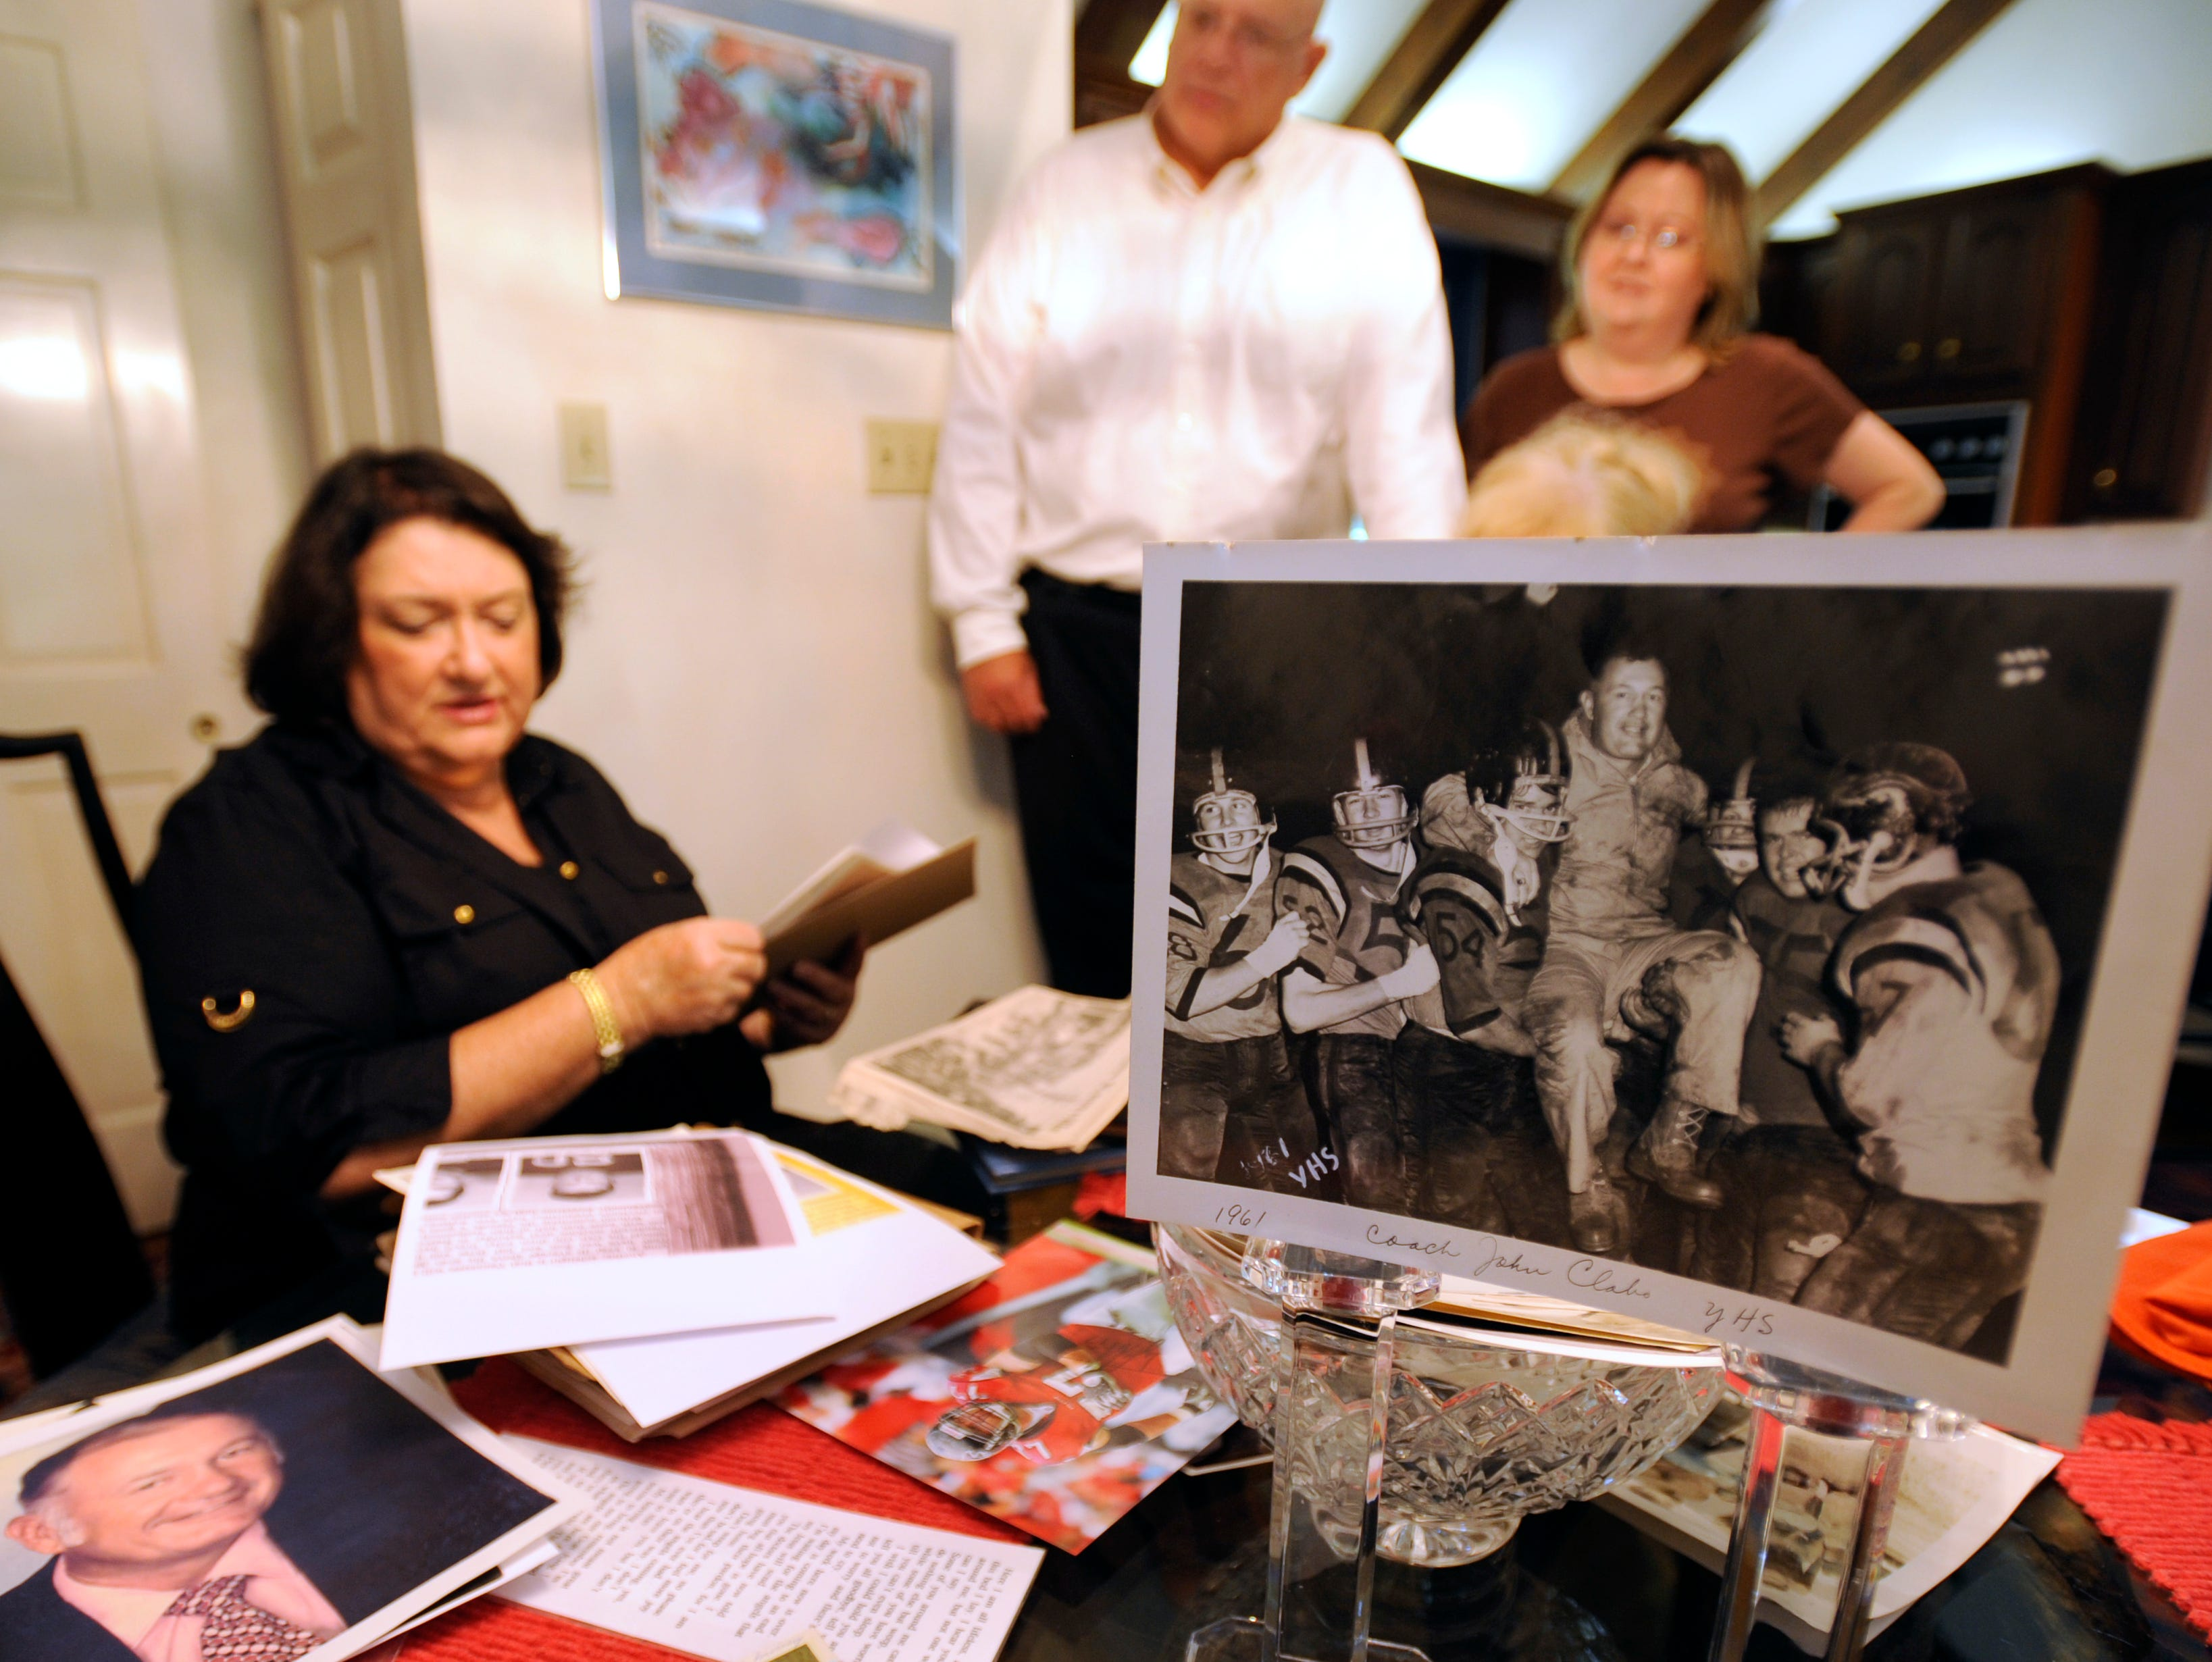 Linda Clabo Underwood, left, her brother Phil Clabo and her sister-in-law Tina Clabo sort through family photographs of their father Bill Clabo, who was a Young High School football coach for years.  Duff Park in South Knoxville was renamed in Clabo's honor.